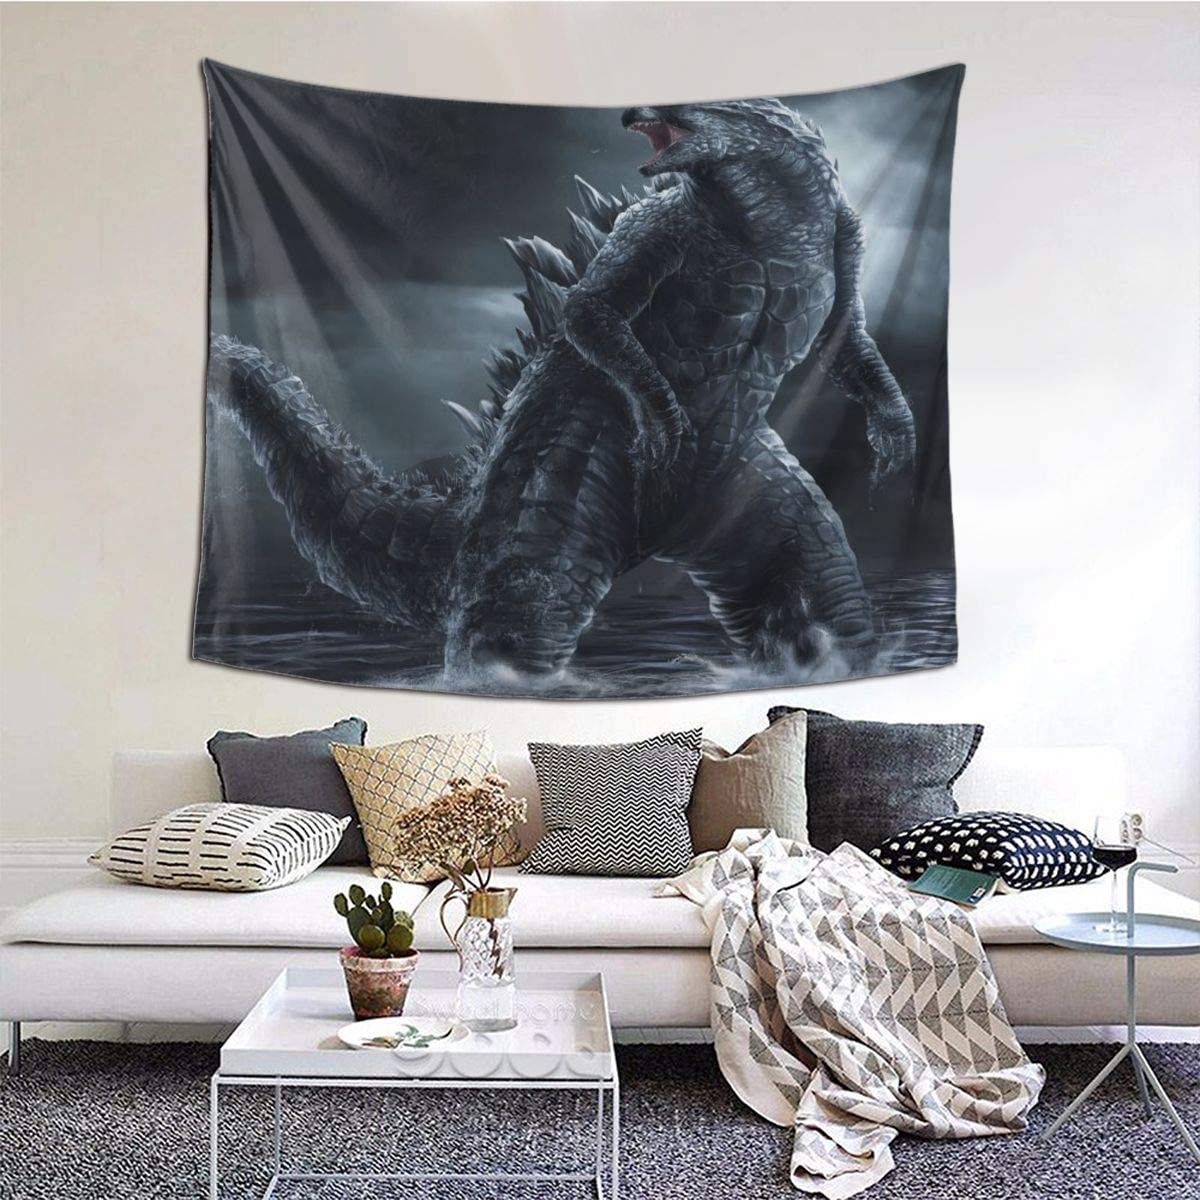 TRdY PAGE Godzilla Night Sea Prints Tapestries Artwork Wall Blanket Tapestry Wall Hanging Wall Art Poster for Dinning Room Party Modern Wall Decor 90x60in 229x152cm